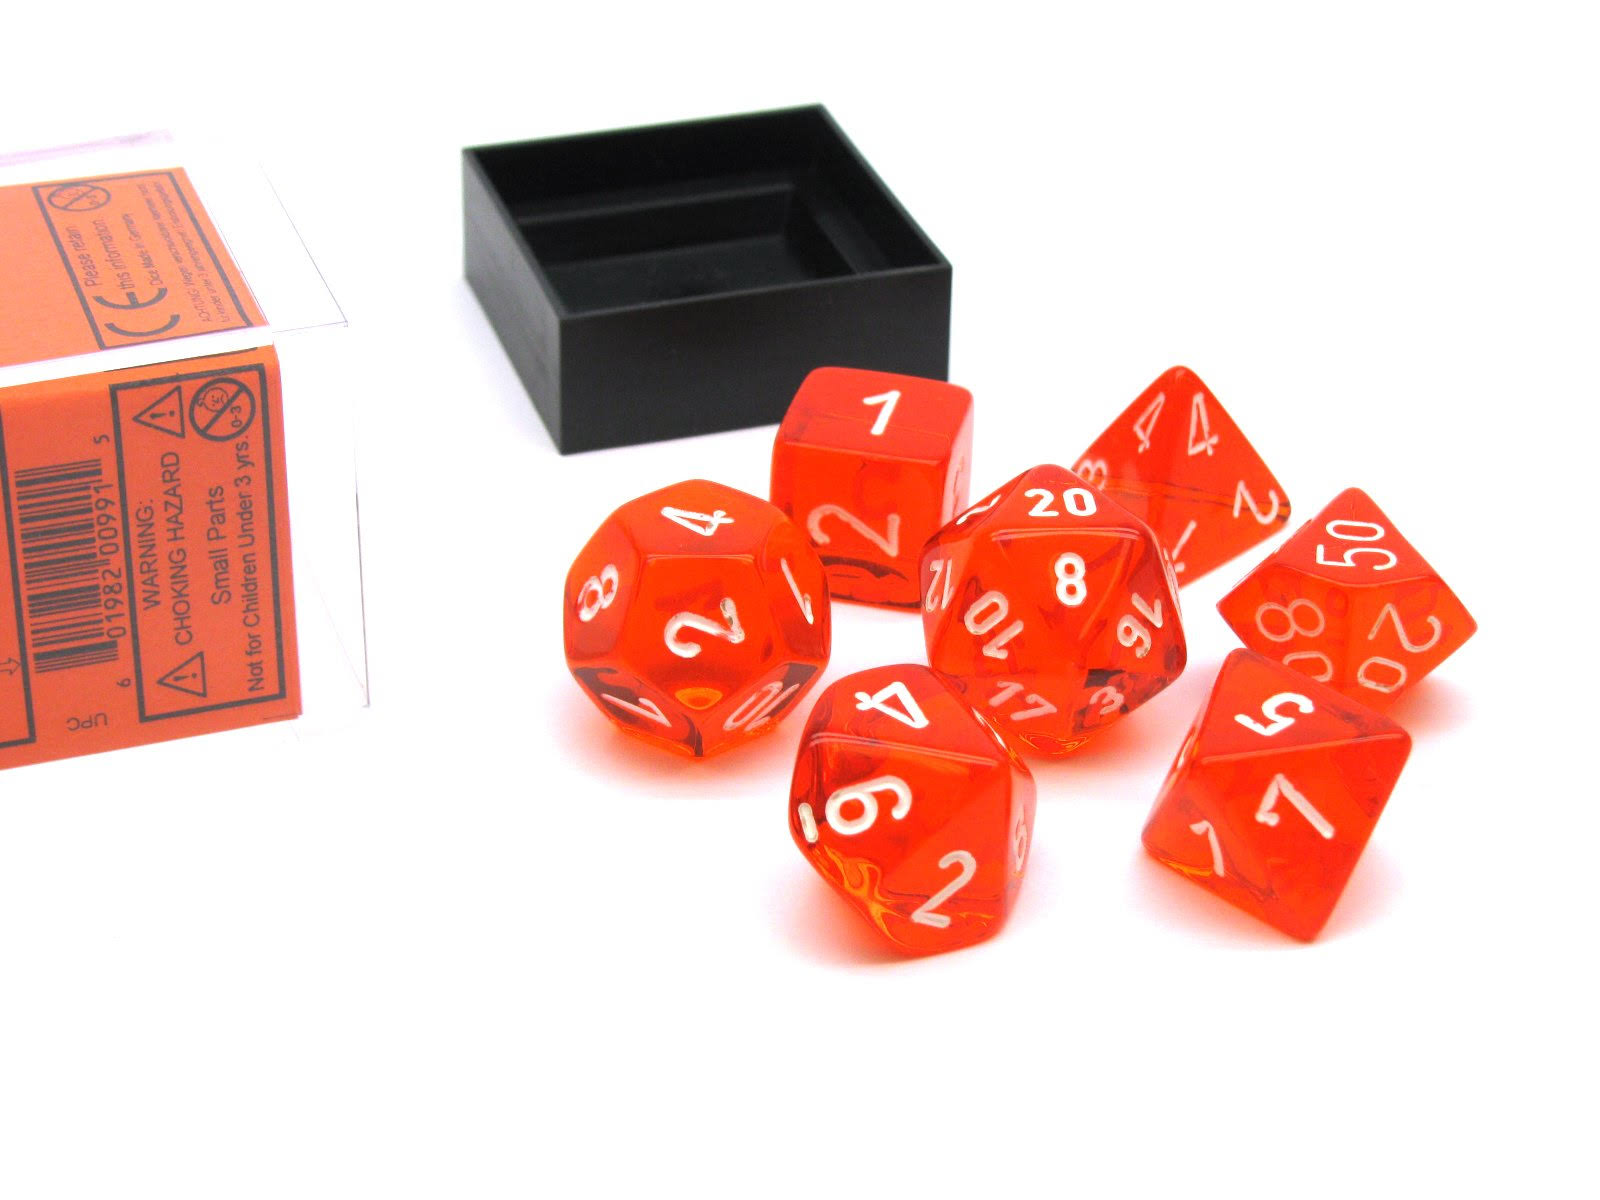 Chessex 7 Set Polyhedral Dice Translucent Orange White CHX23073